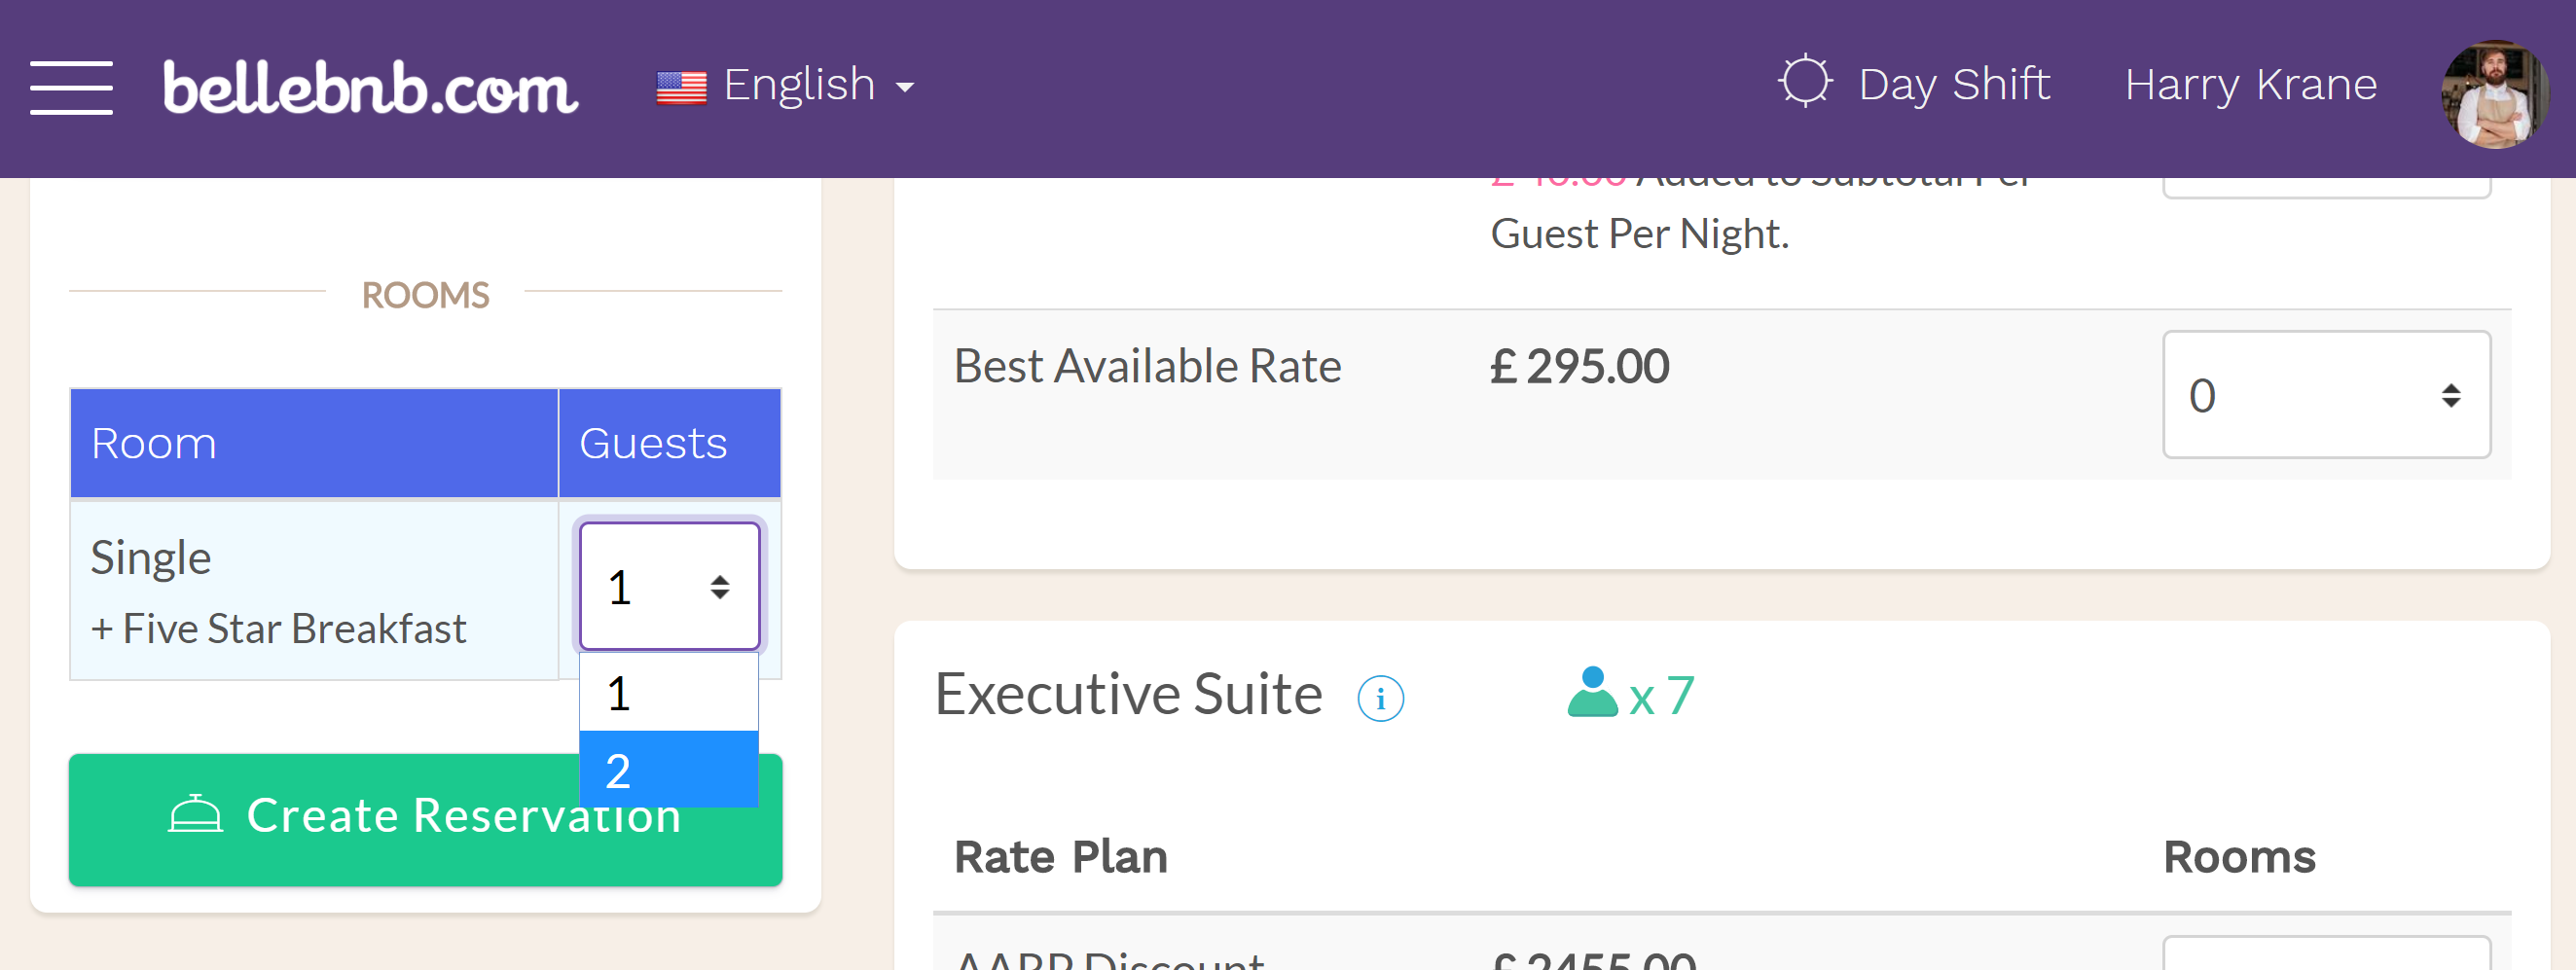 Selecting more than 1 room in the 'Guests/Rooms' menu will allow you to add multiple rooms to a reservation. Using the 'Rooms' dropdown, add rooms to your reservation. If you are using Rate Plans (c.f., FAQ) you will be presented with the available rooms at each available rate.